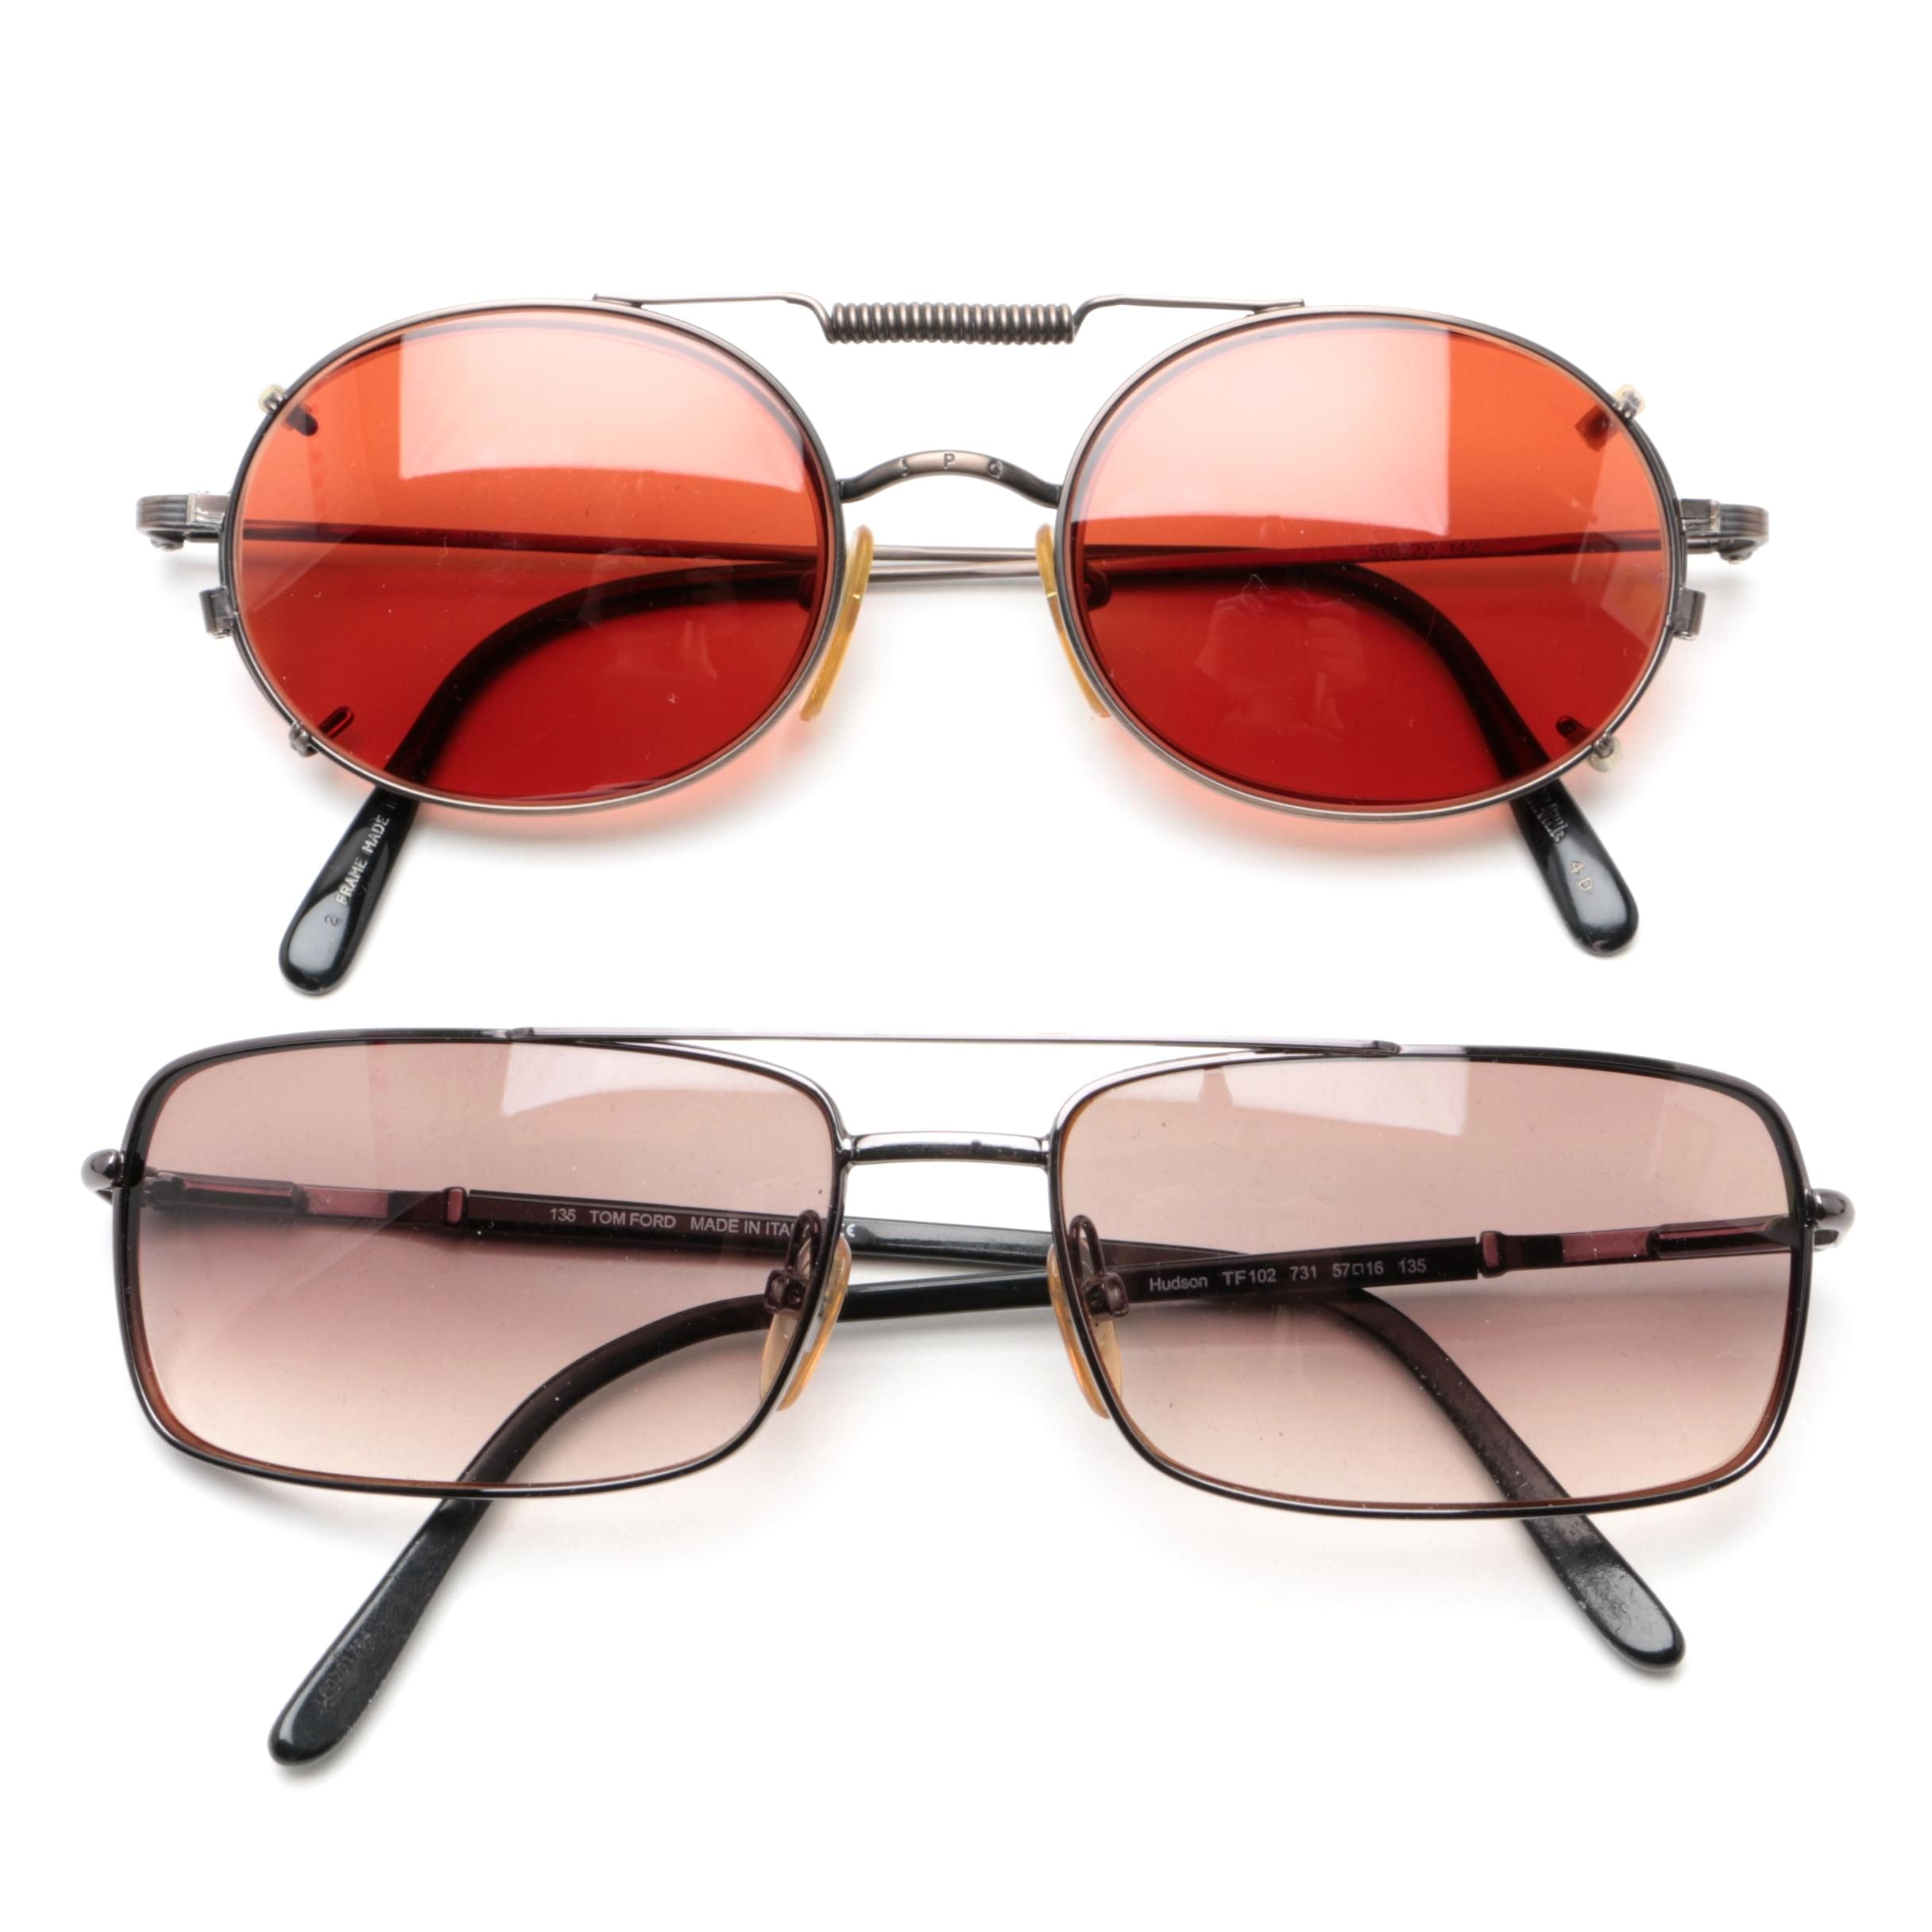 Vintage Tom Ford And Jean Paul Gaultier Eyeglasses